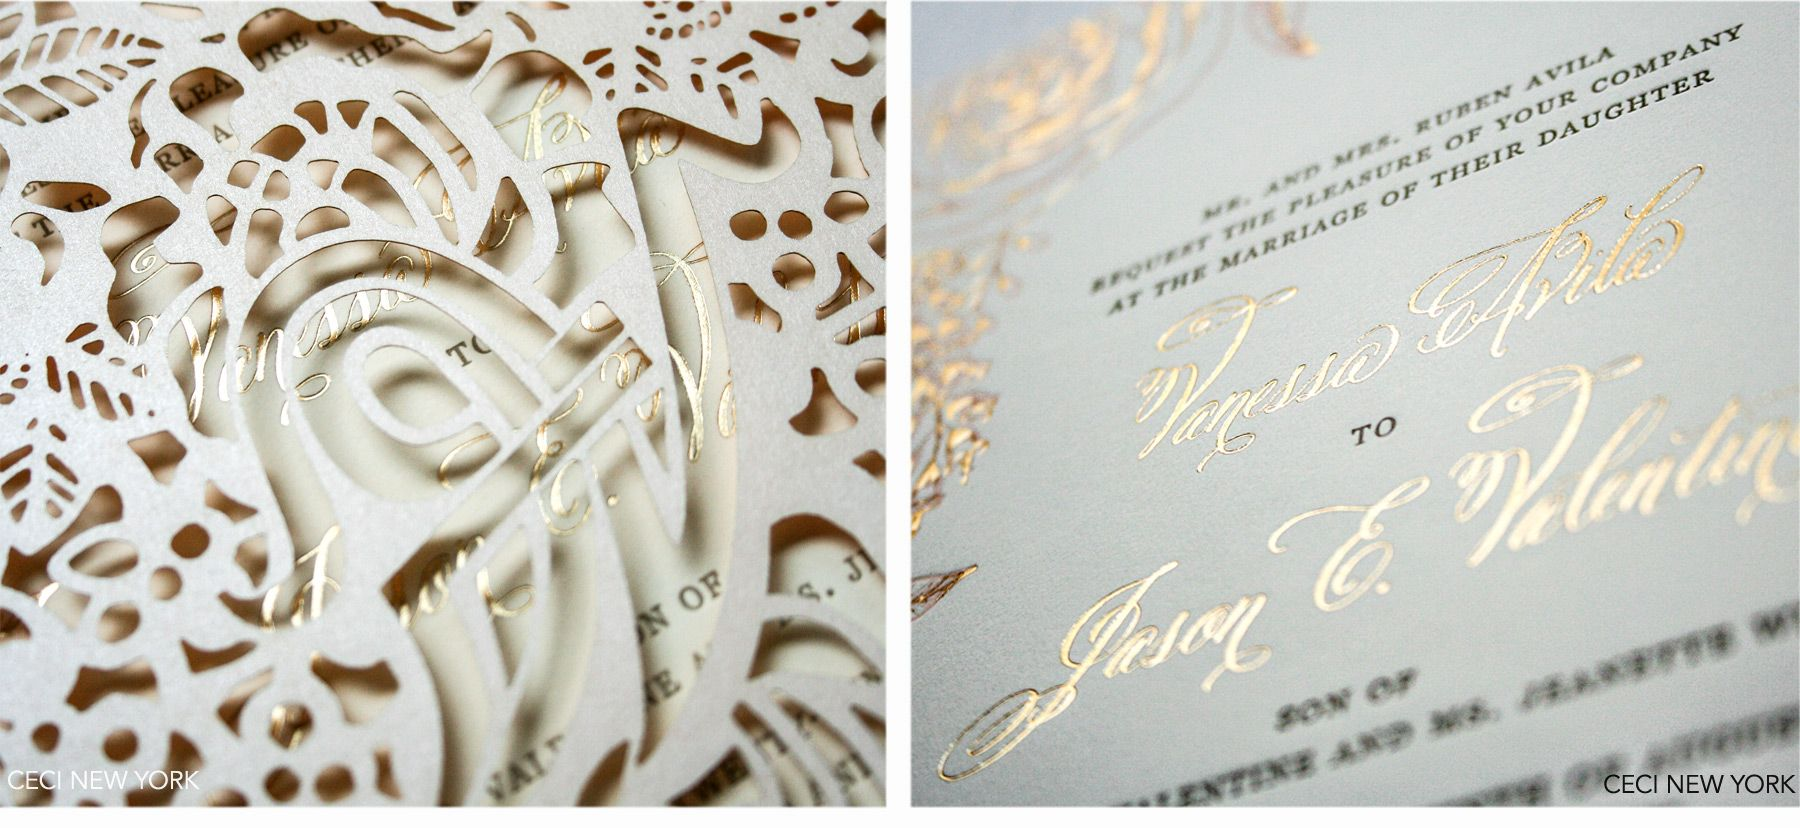 Los Angeles Wedding Invitations: Luxury Wedding Invitations By Ceci New York